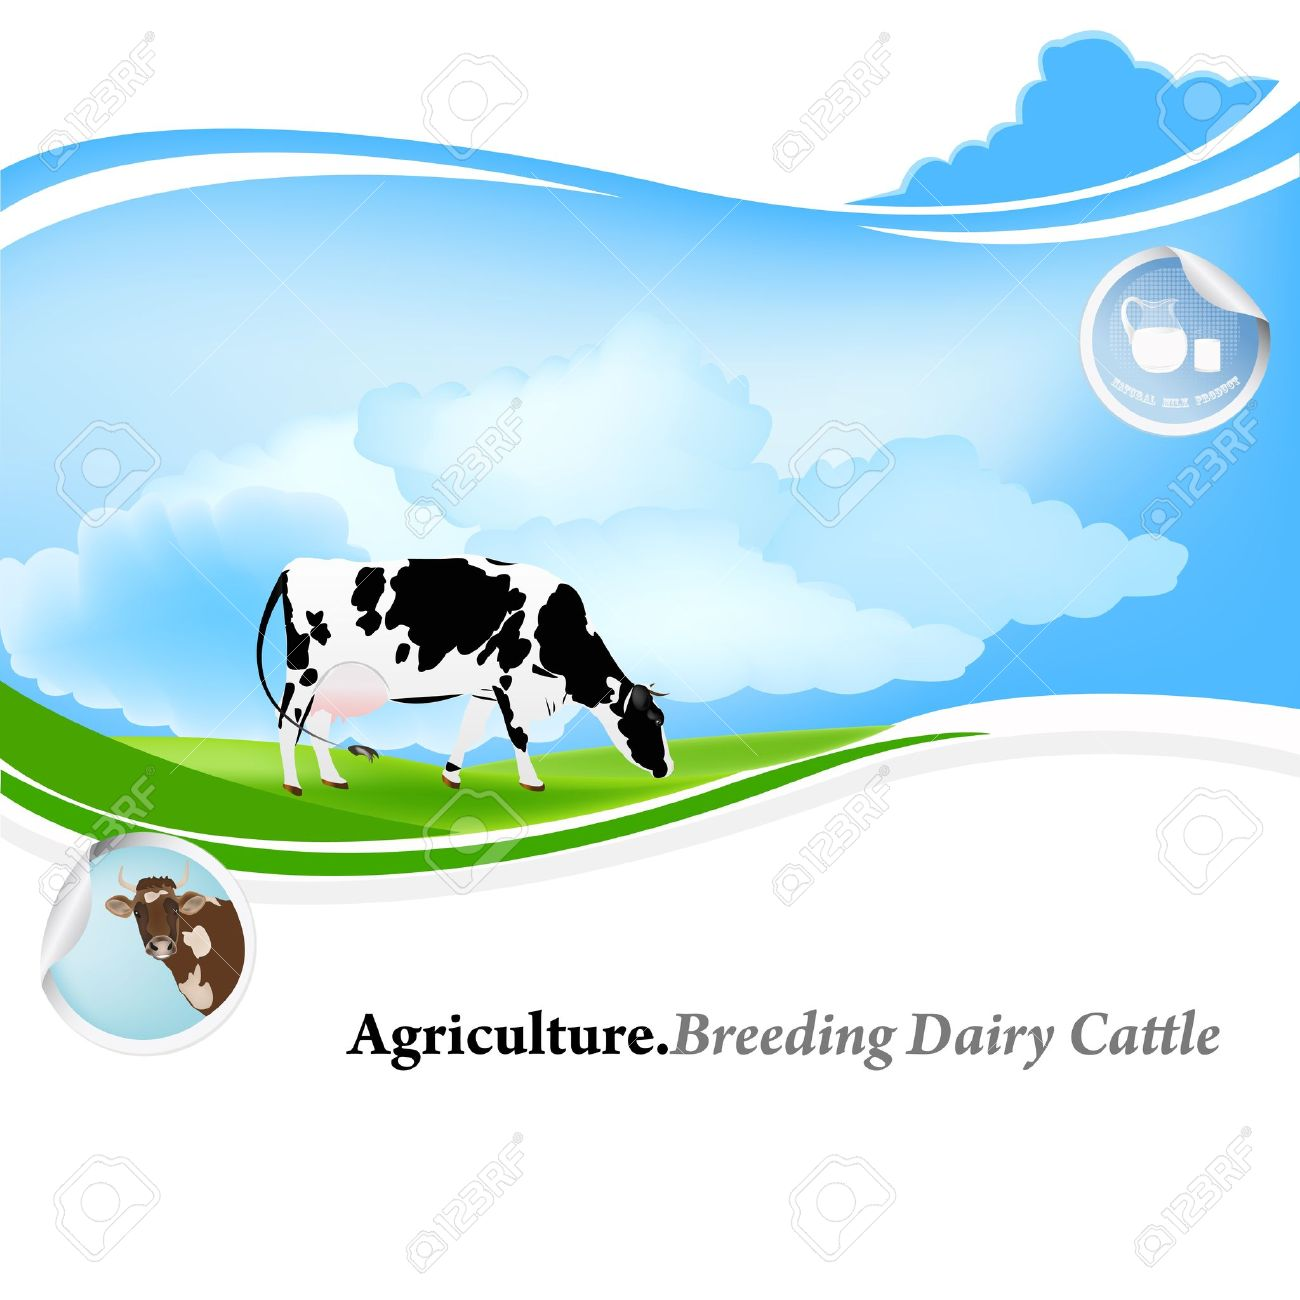 agriculture breeding dairy cattle background royalty free cliparts